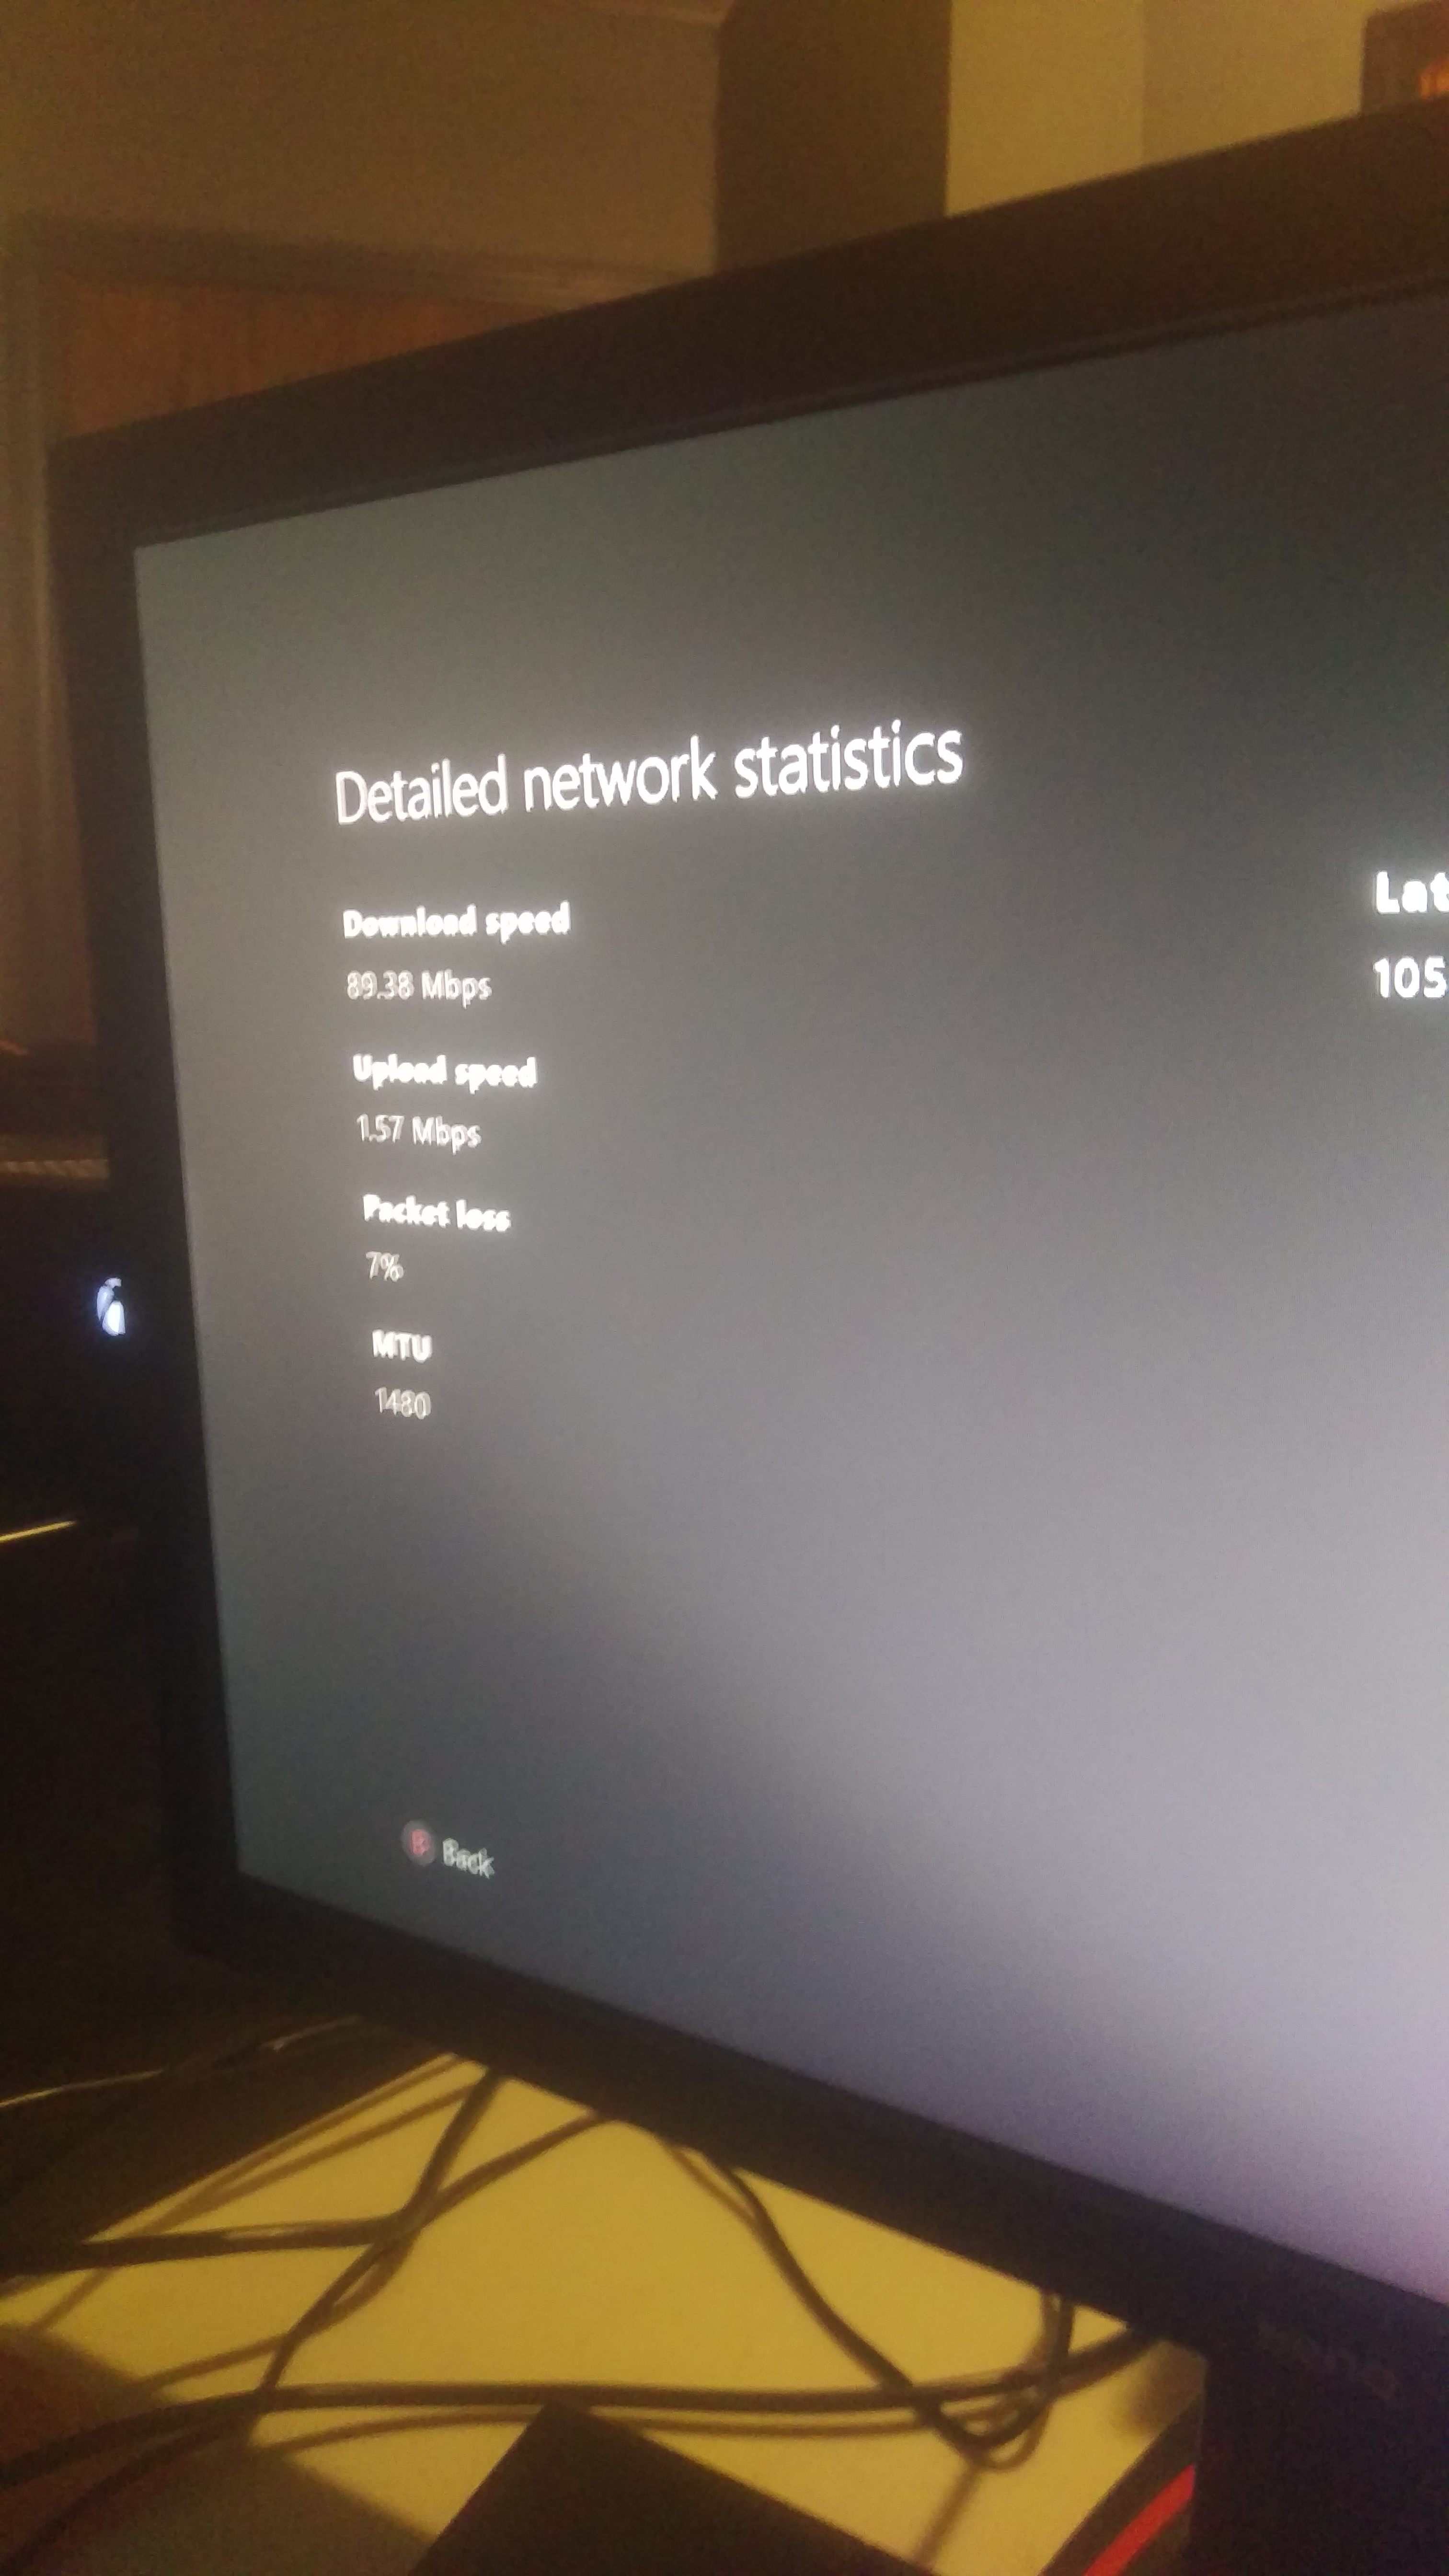 Xbox lag and pack your loss - Internet - Internet Forum